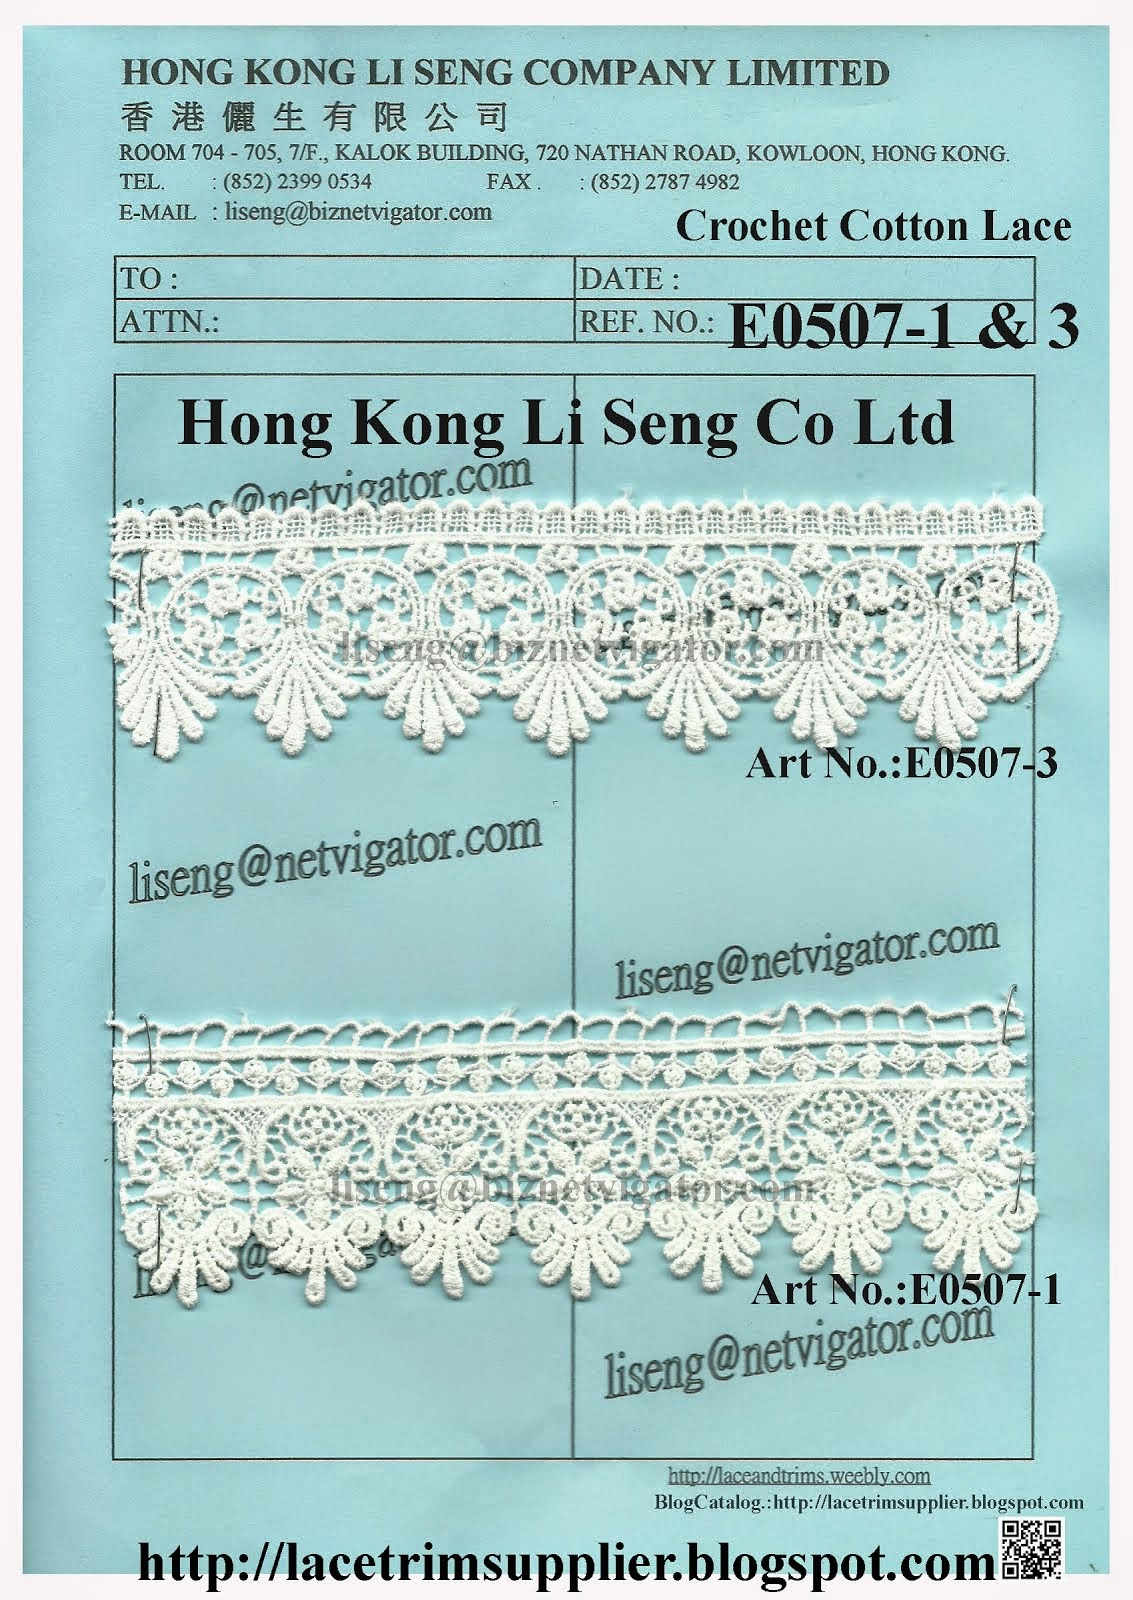 Crochet Cotton Lace Manufacturer and Supplier - Hong Kong Li Seng Co Ltd